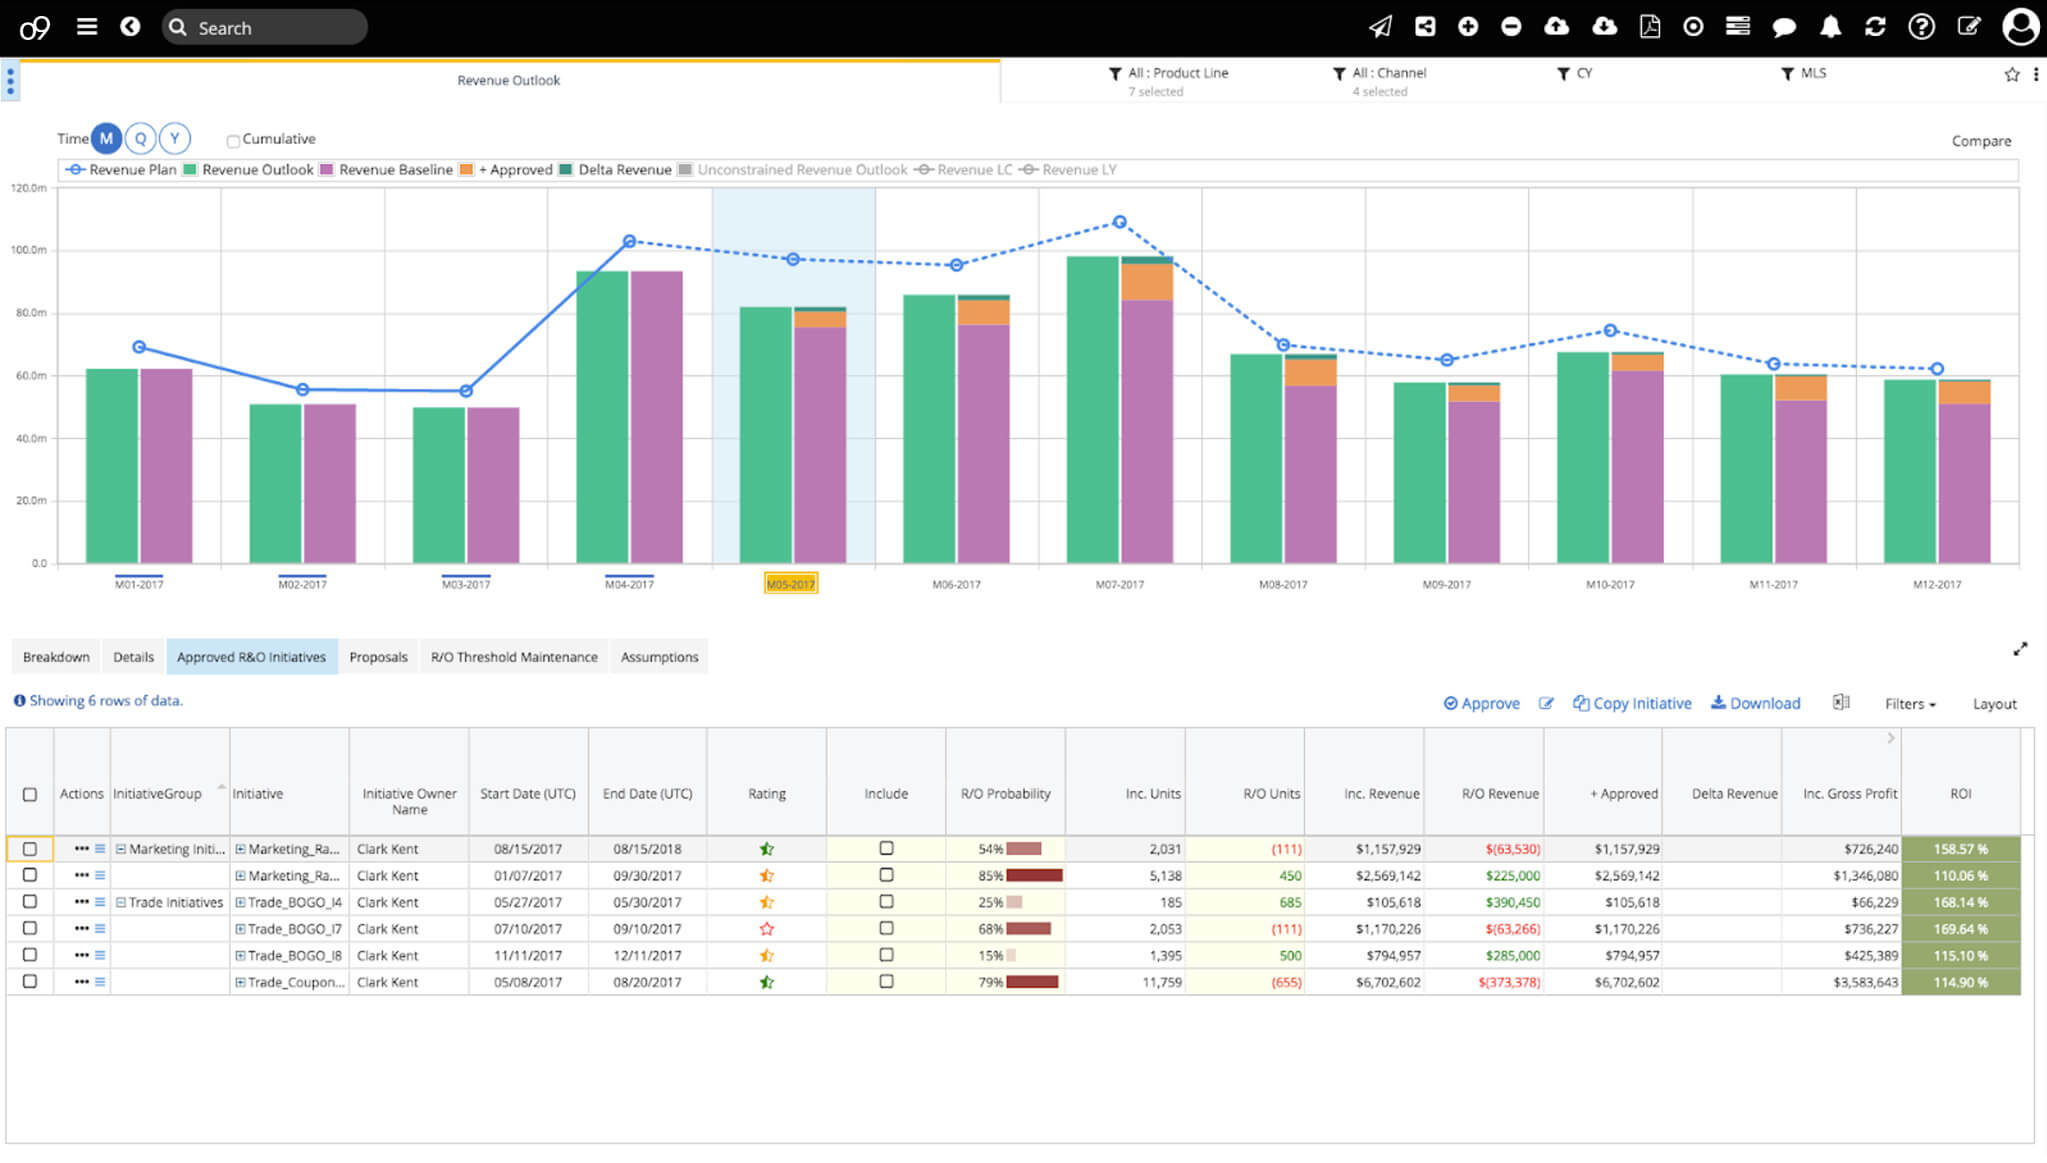 o9 revenue planning solutions screenshot, shows the overview of risks and opportunities for better management and planning